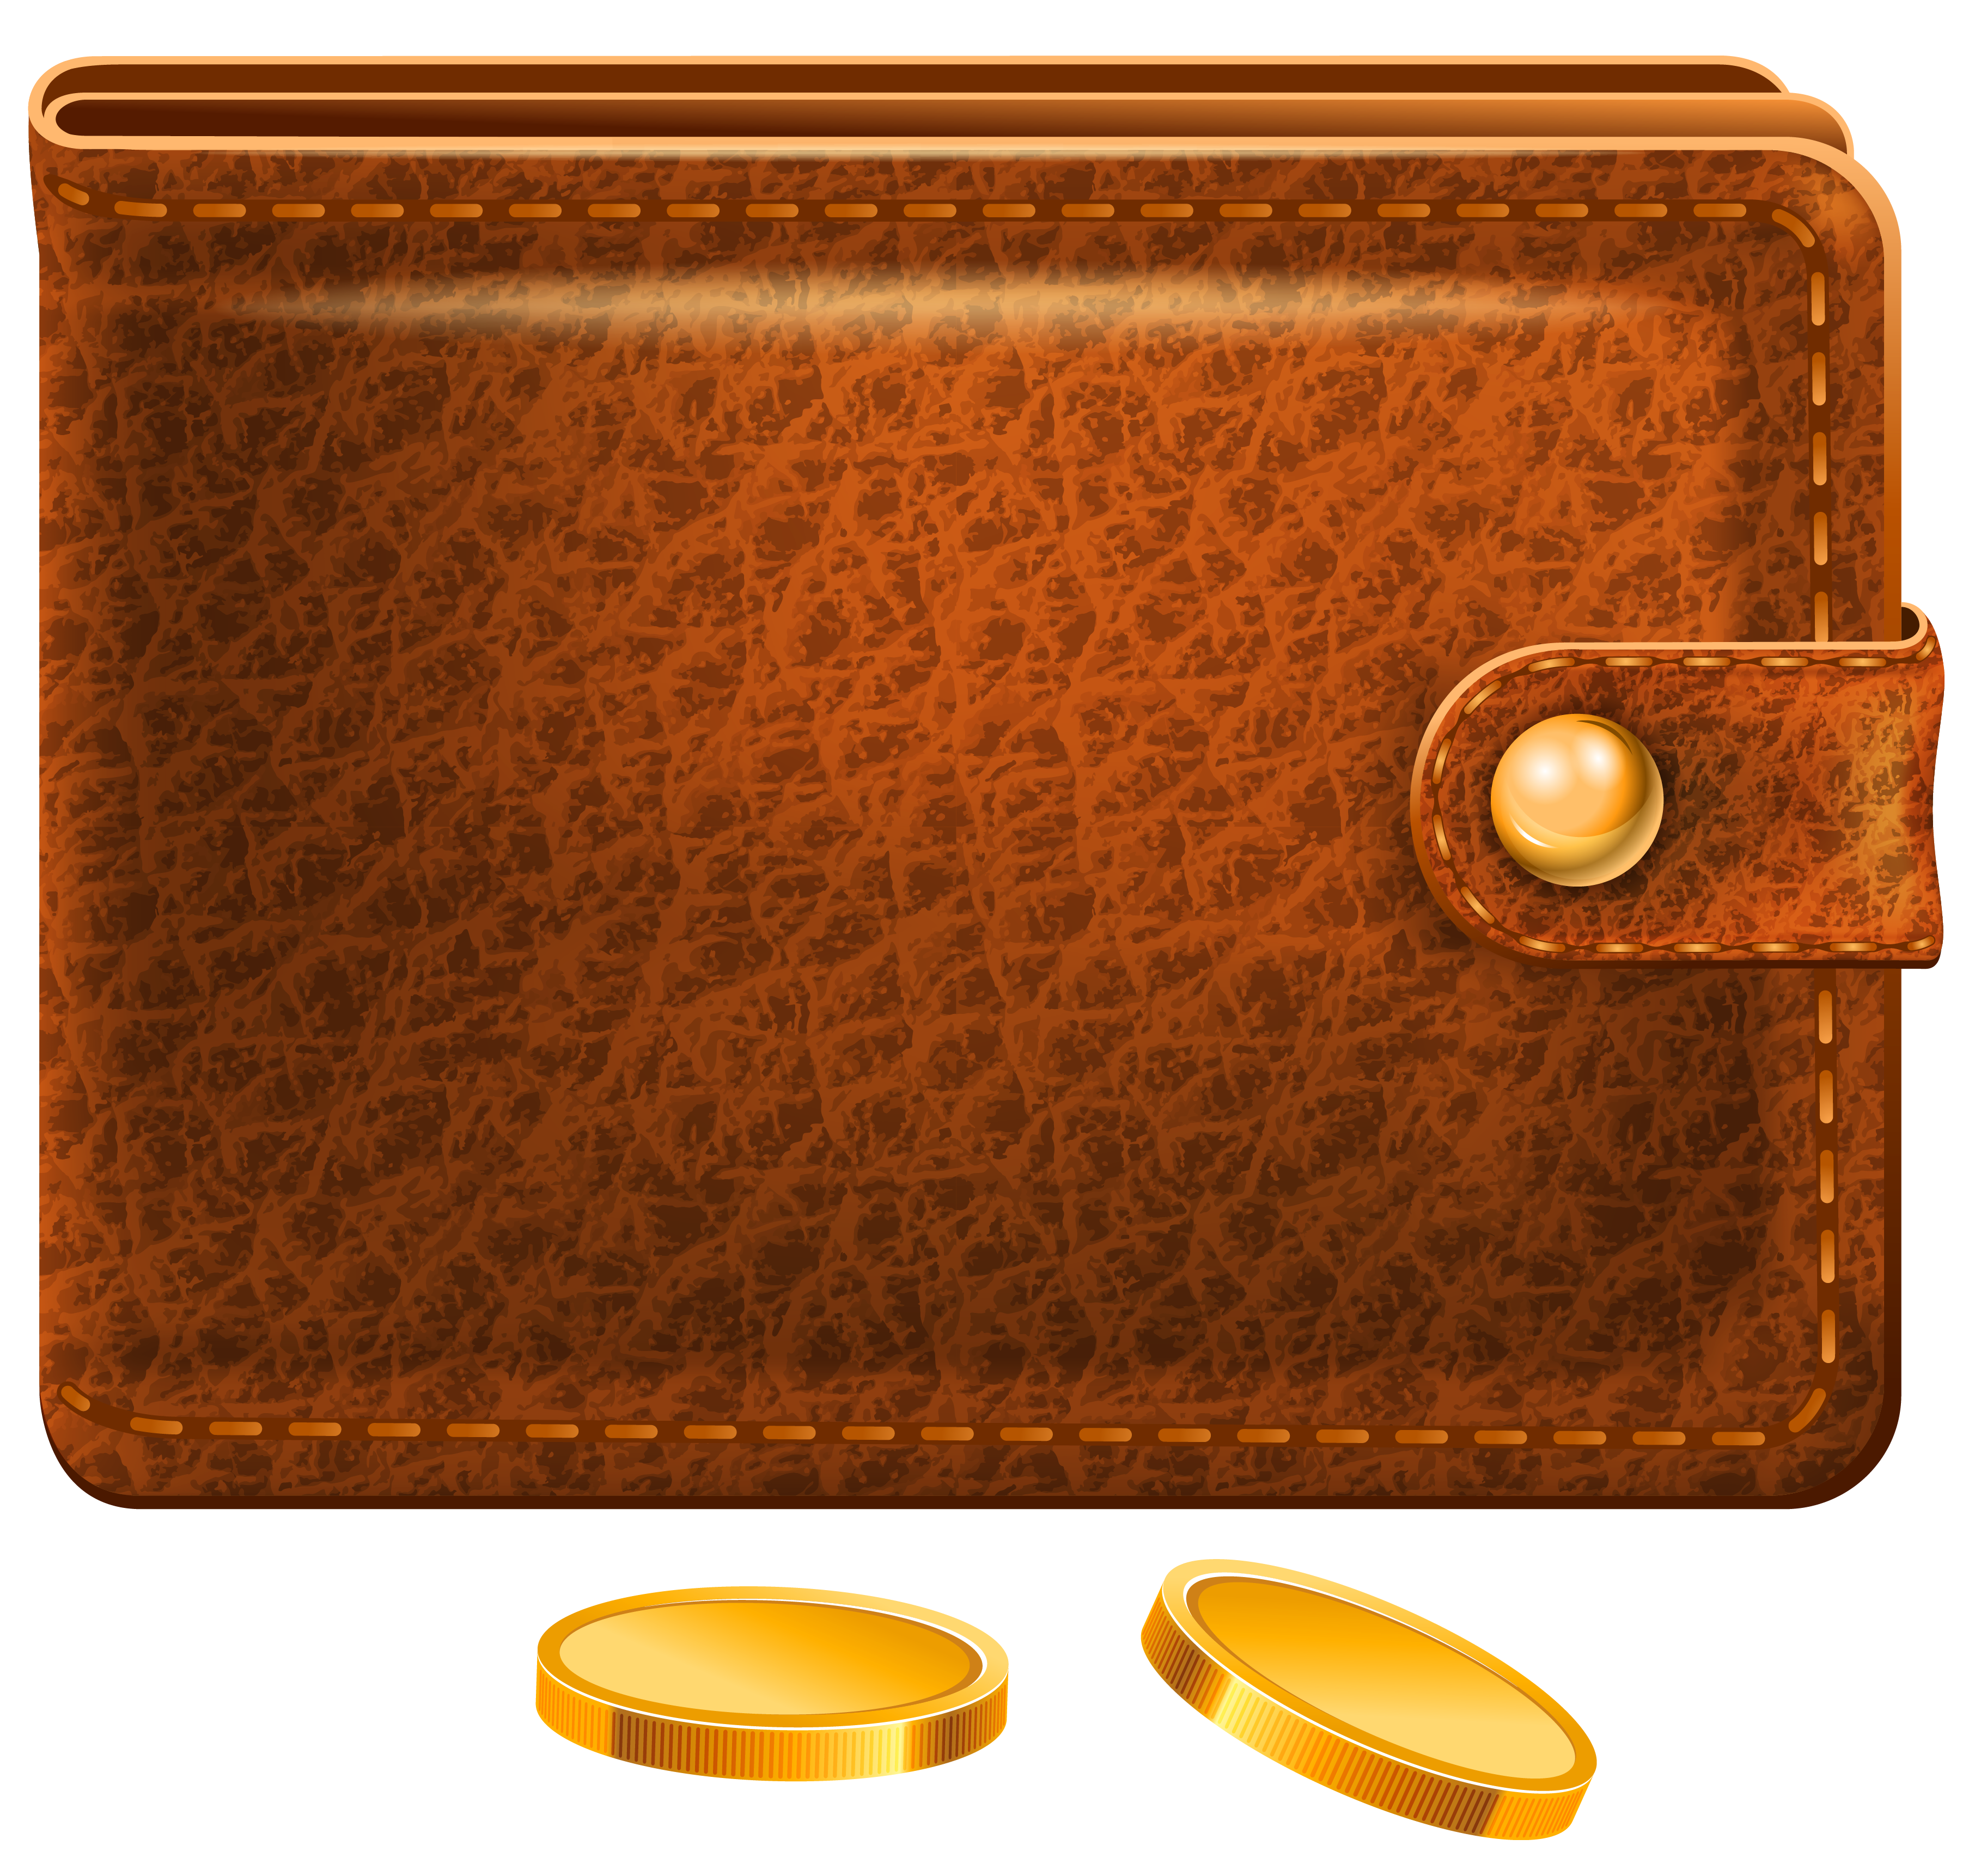 Wallet with coins png. Money clipart purse